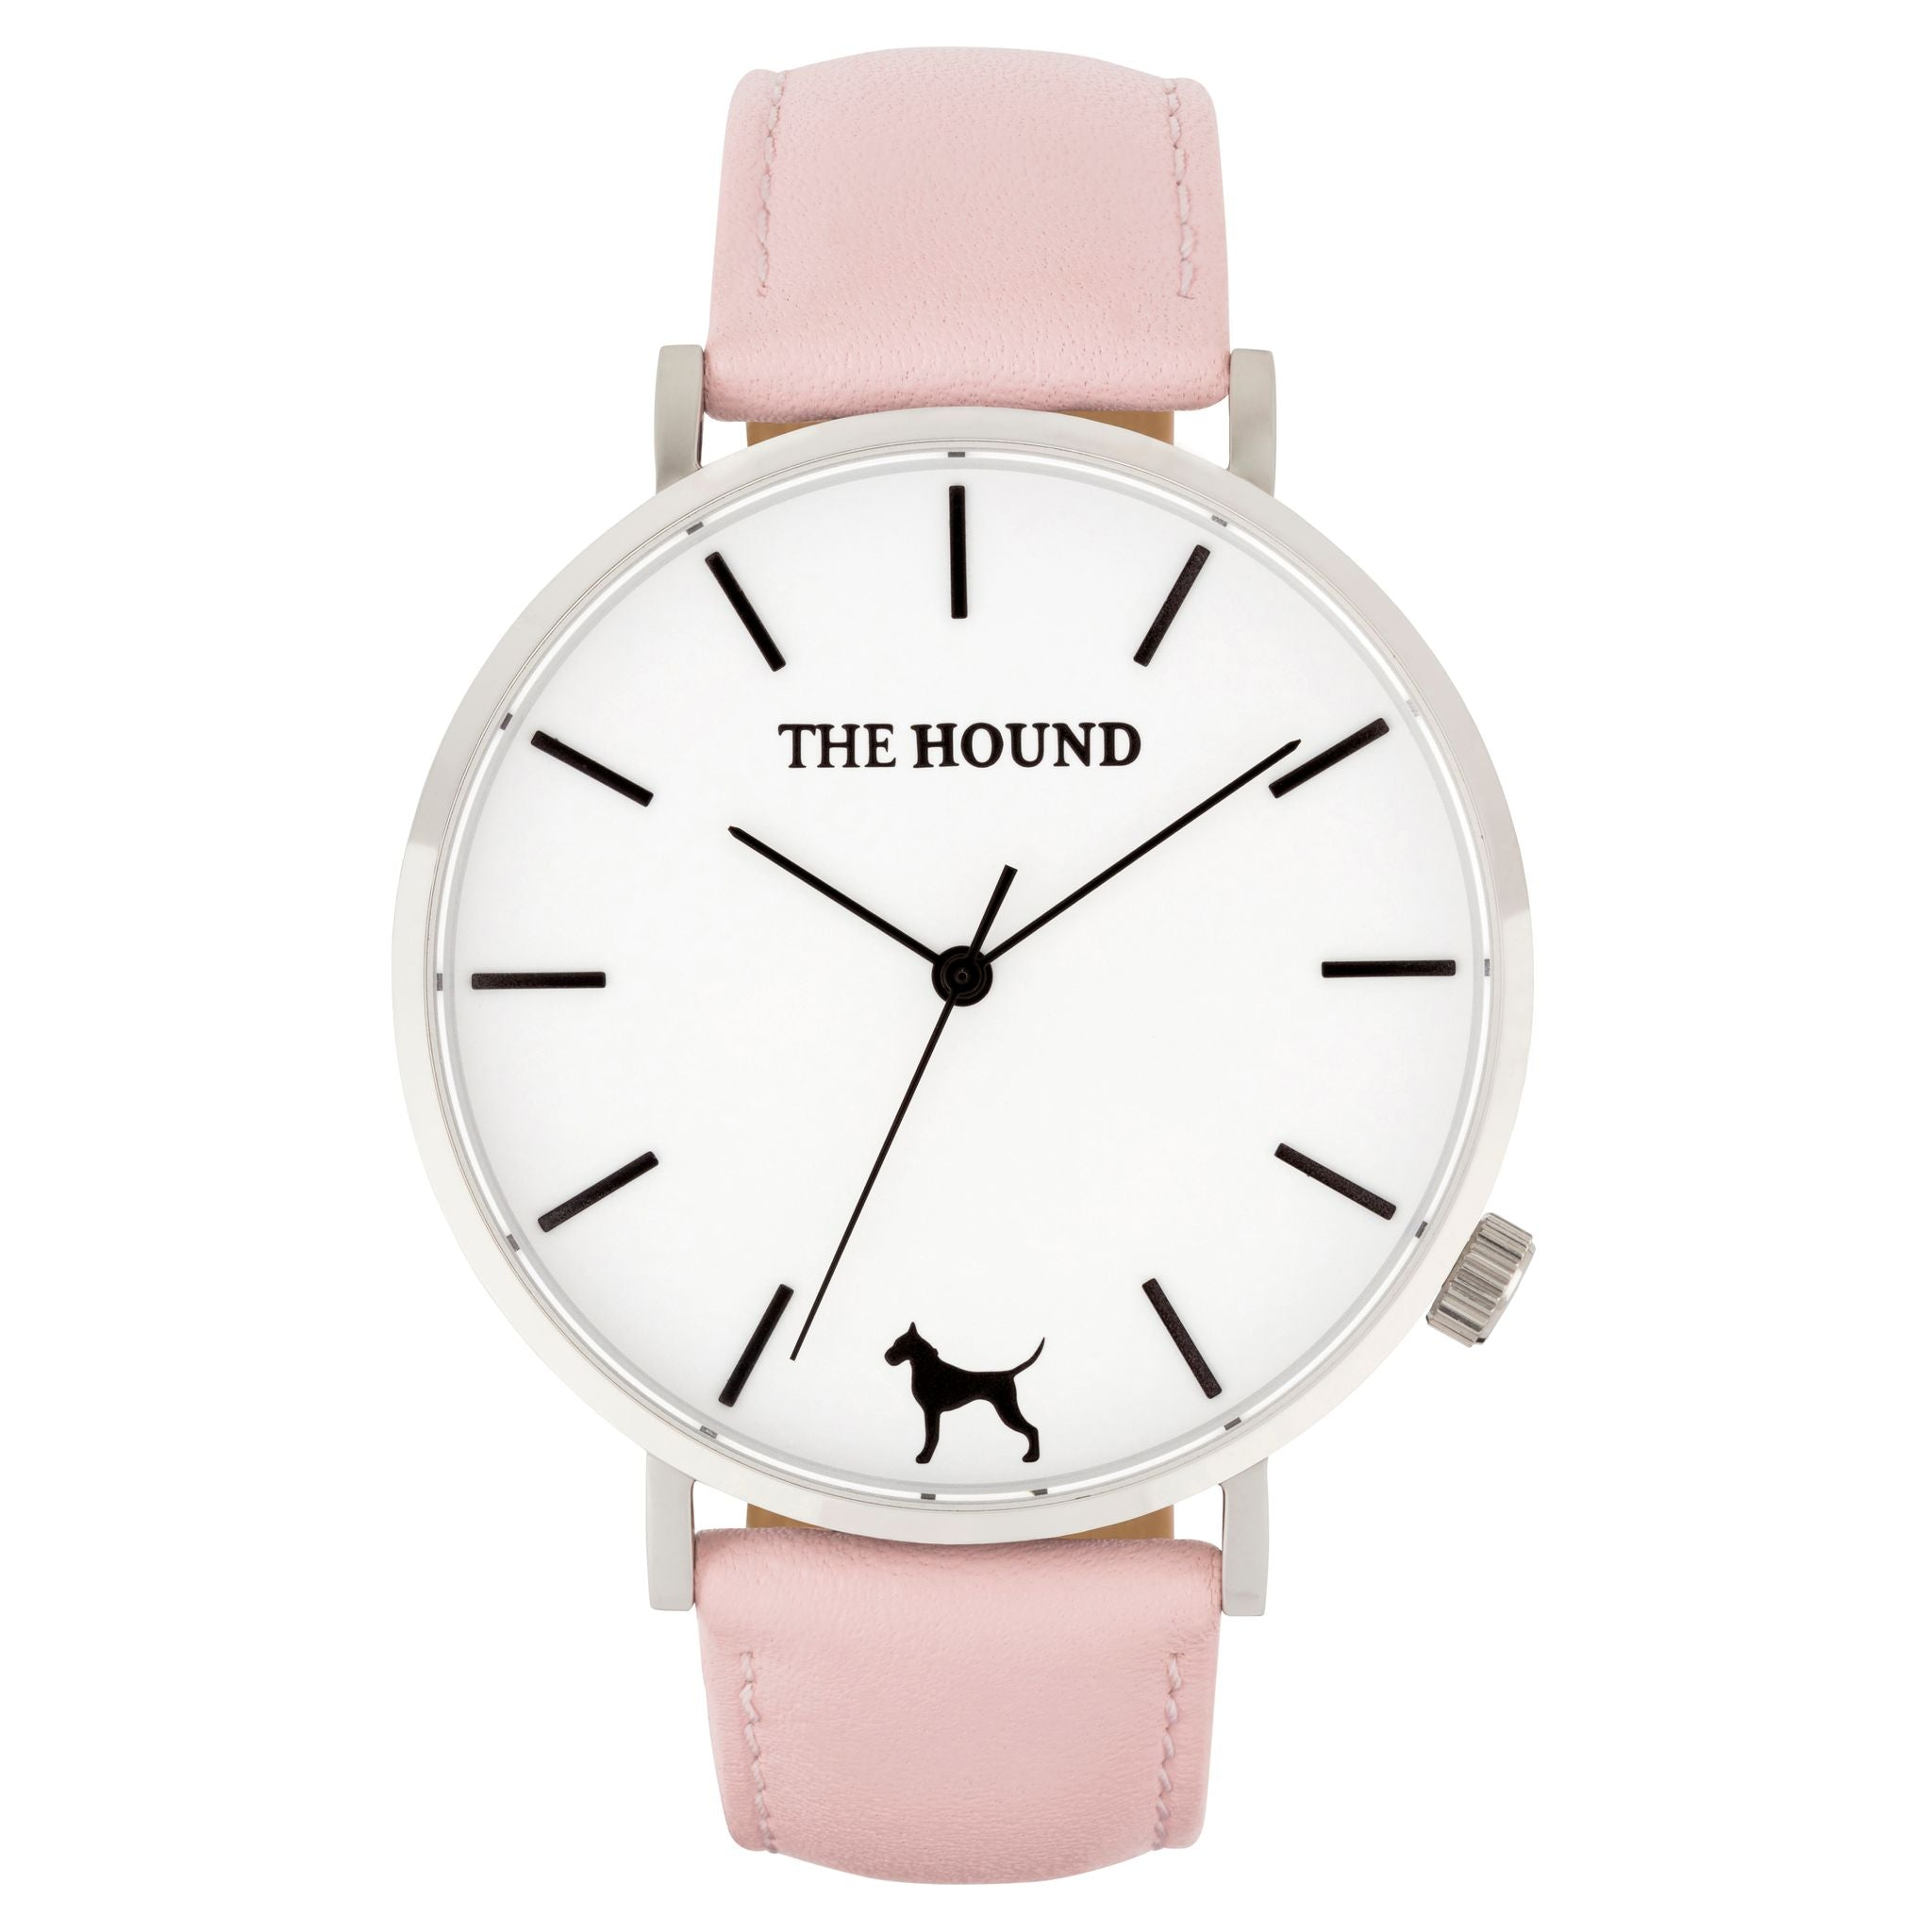 Silver & white face watch with blush pink leather